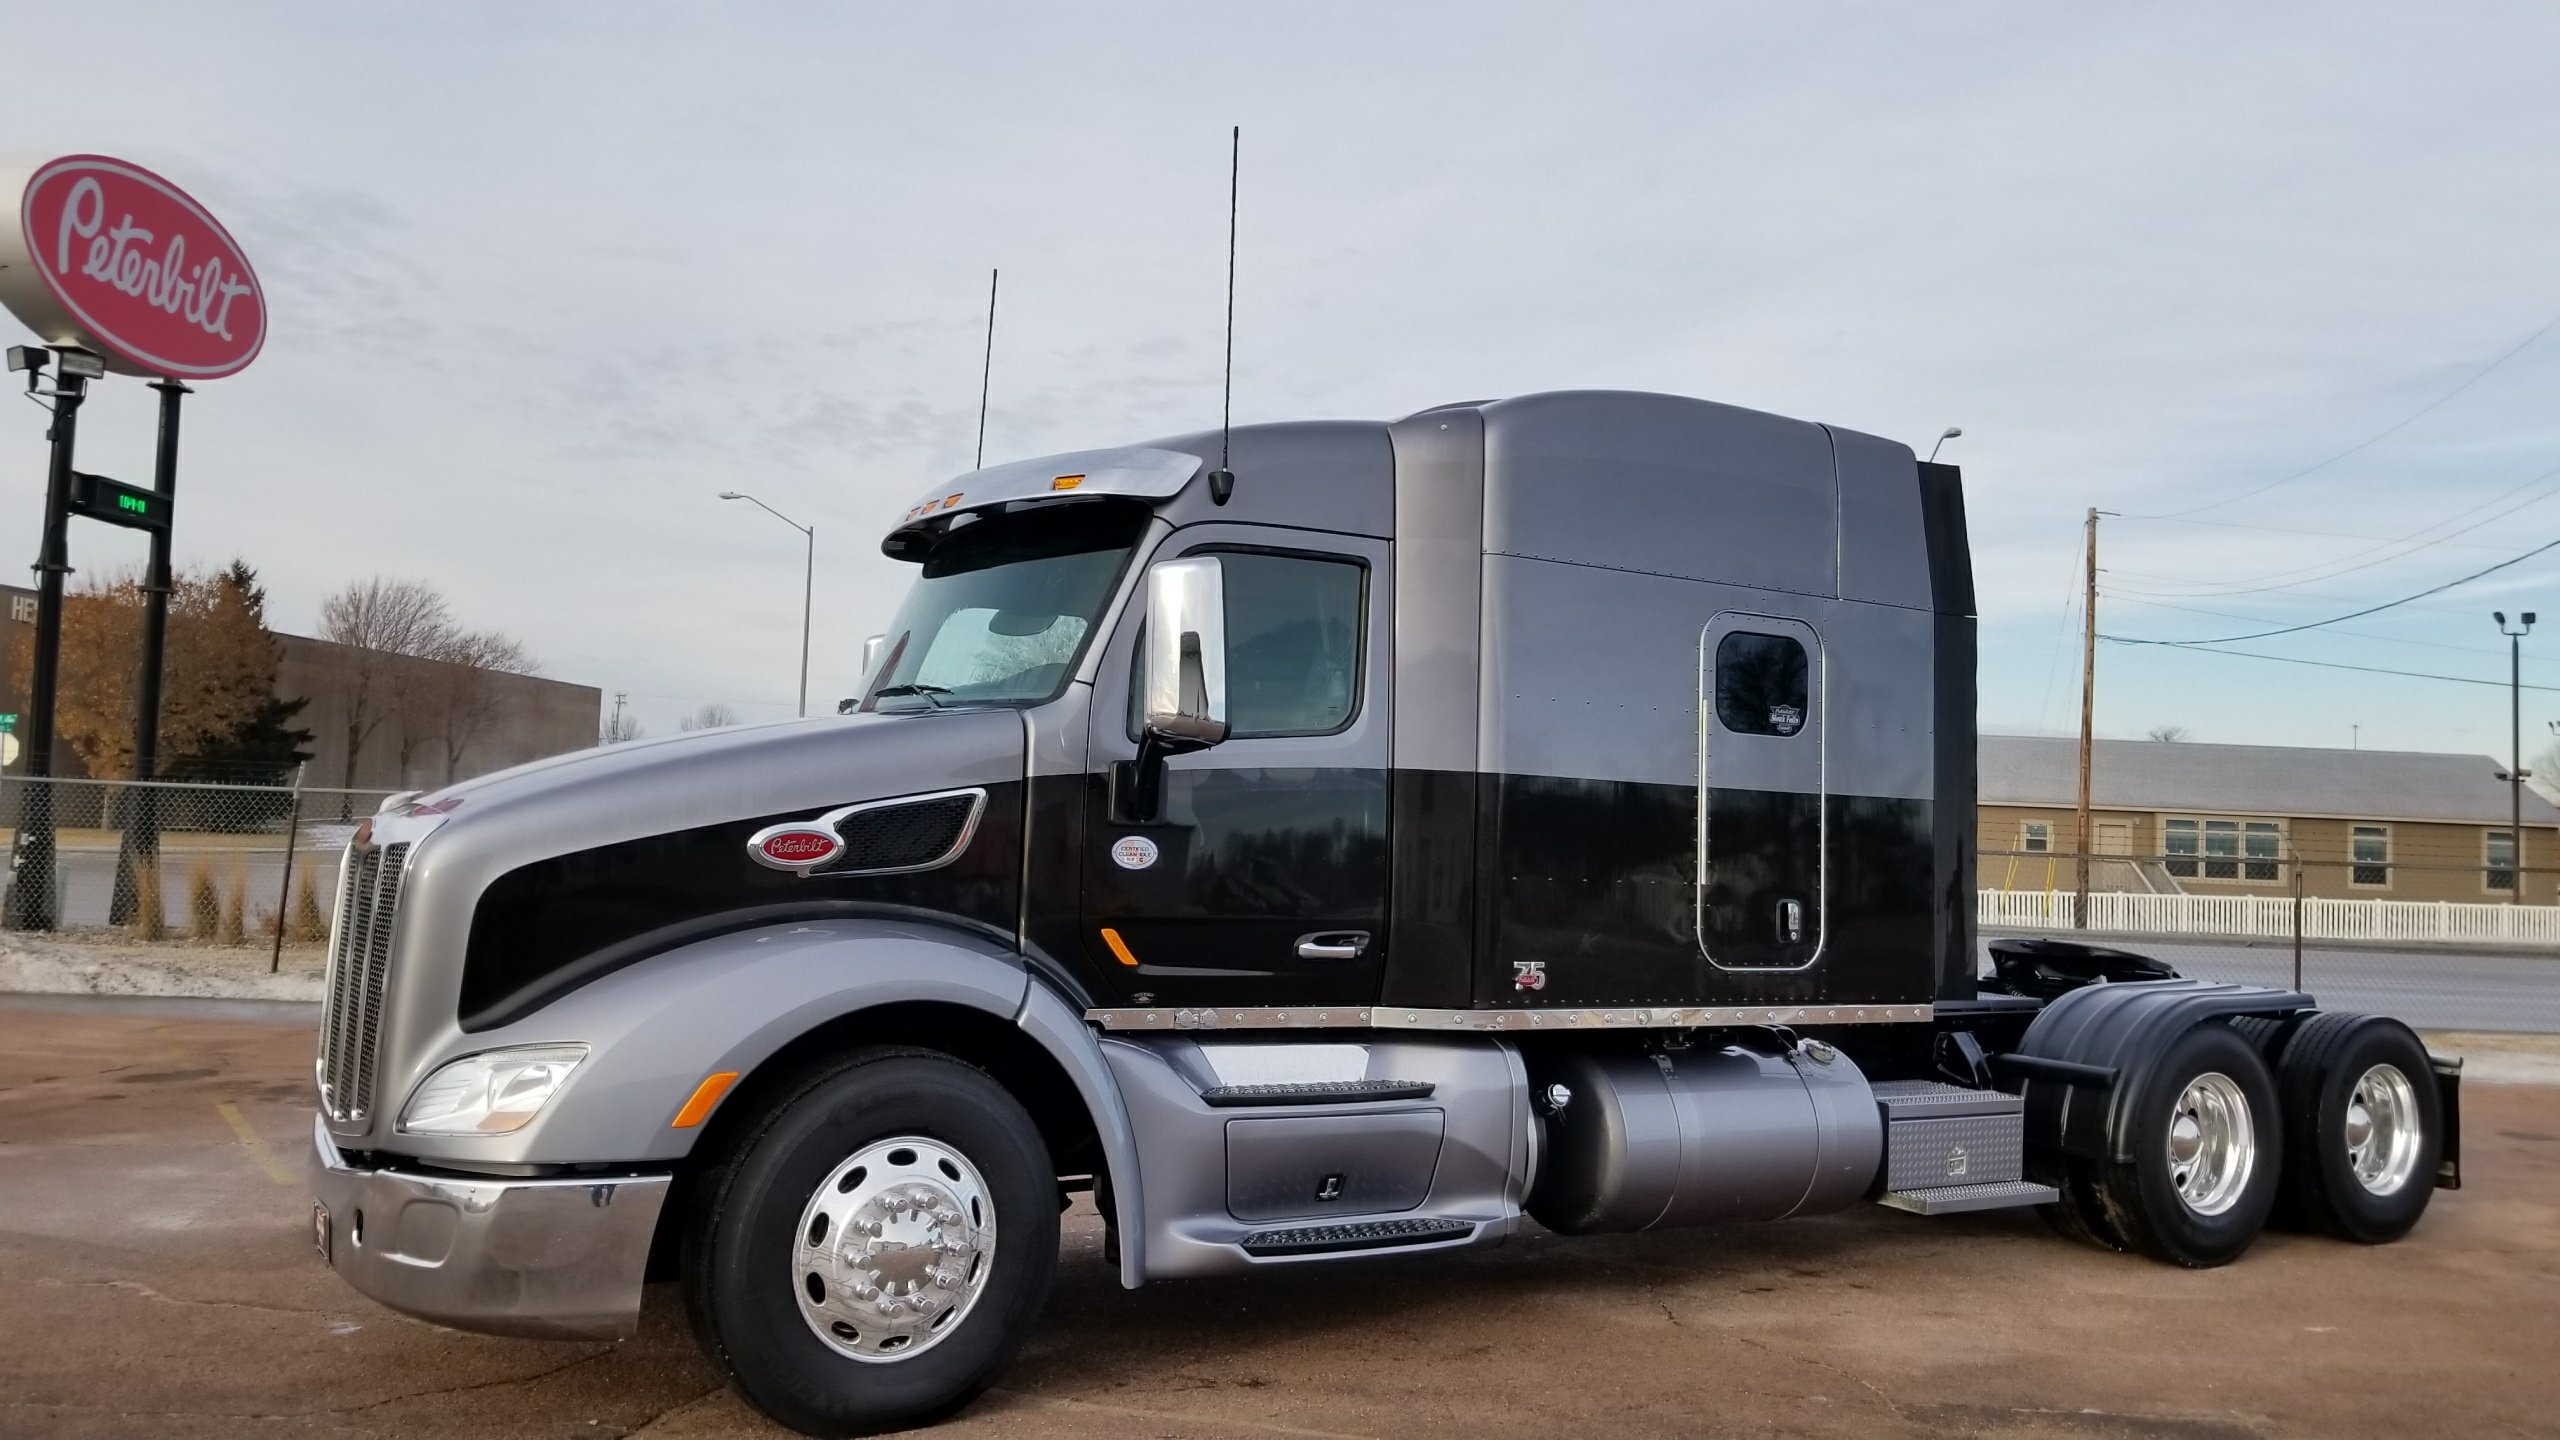 Wallpaper Stores In Sioux Falls Sd 75th Anniversary Custom 579 For Sale Peterbilt Of Sioux